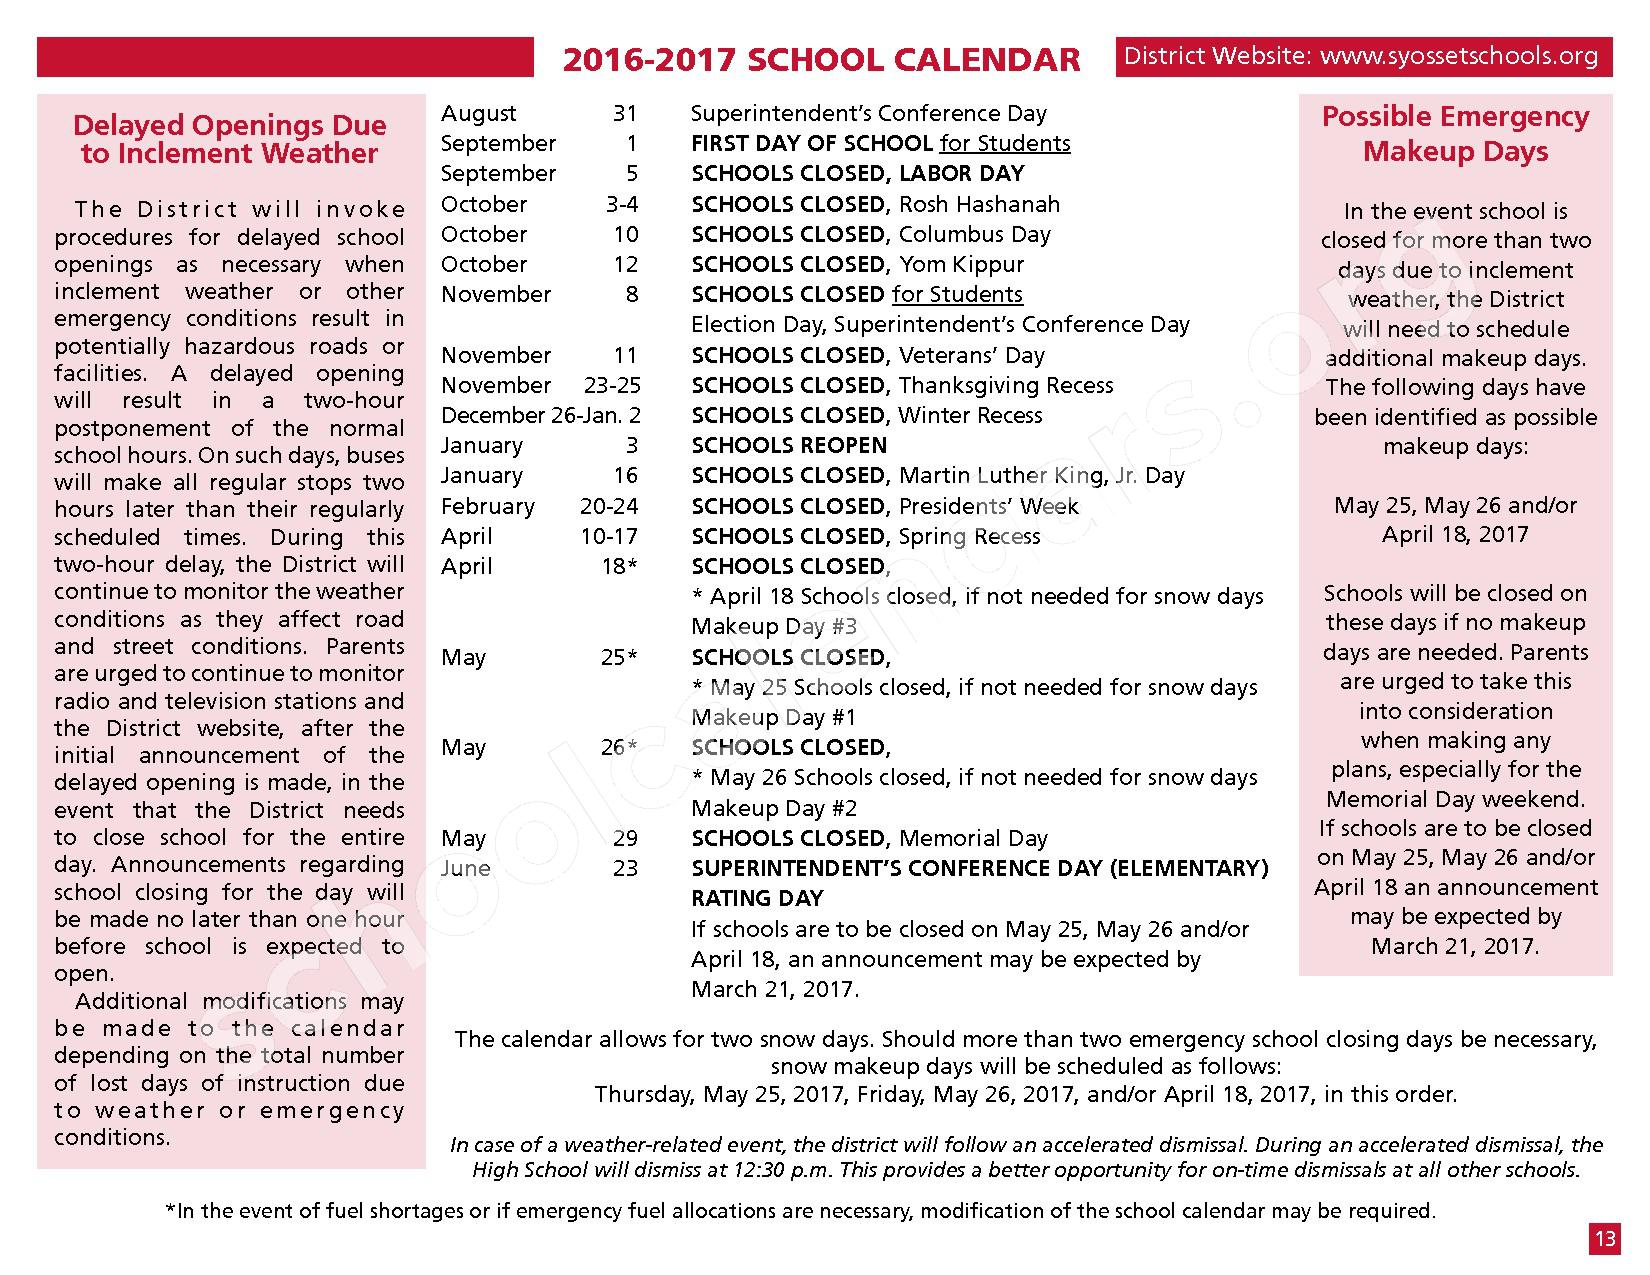 2016 - 2017 District Calendar – Syosset Central School District – page 15